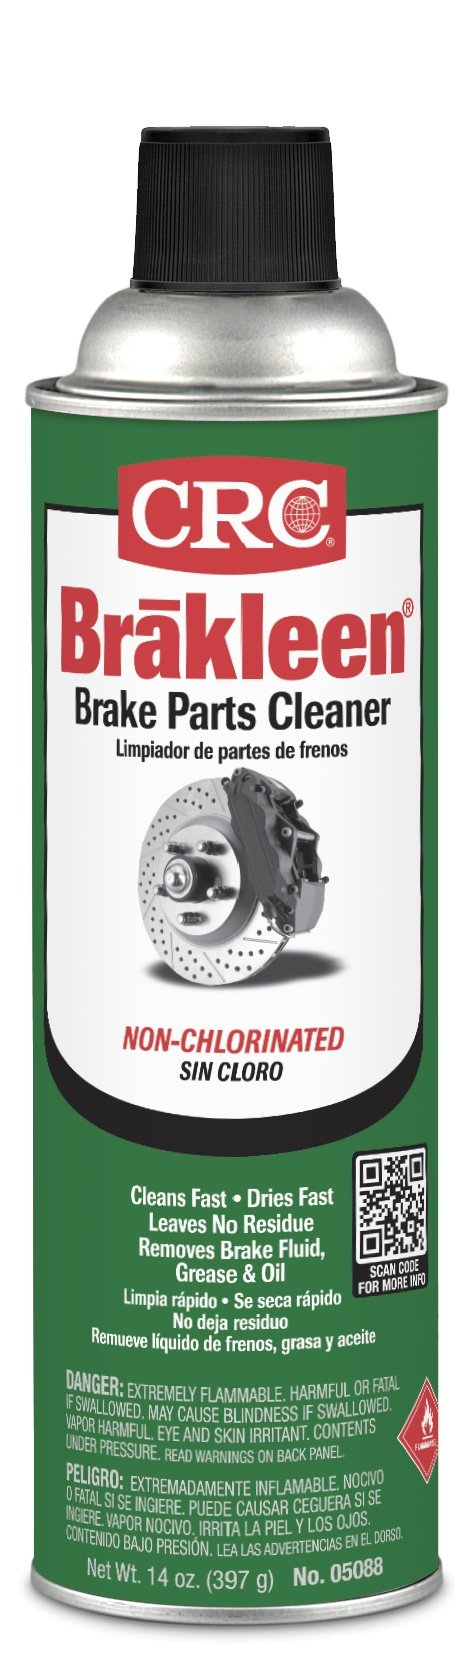 CRC Brakleen Non-chlorinated Brake Parts Cleaner, 14 Oz, Pack of 12 Cans by CRC